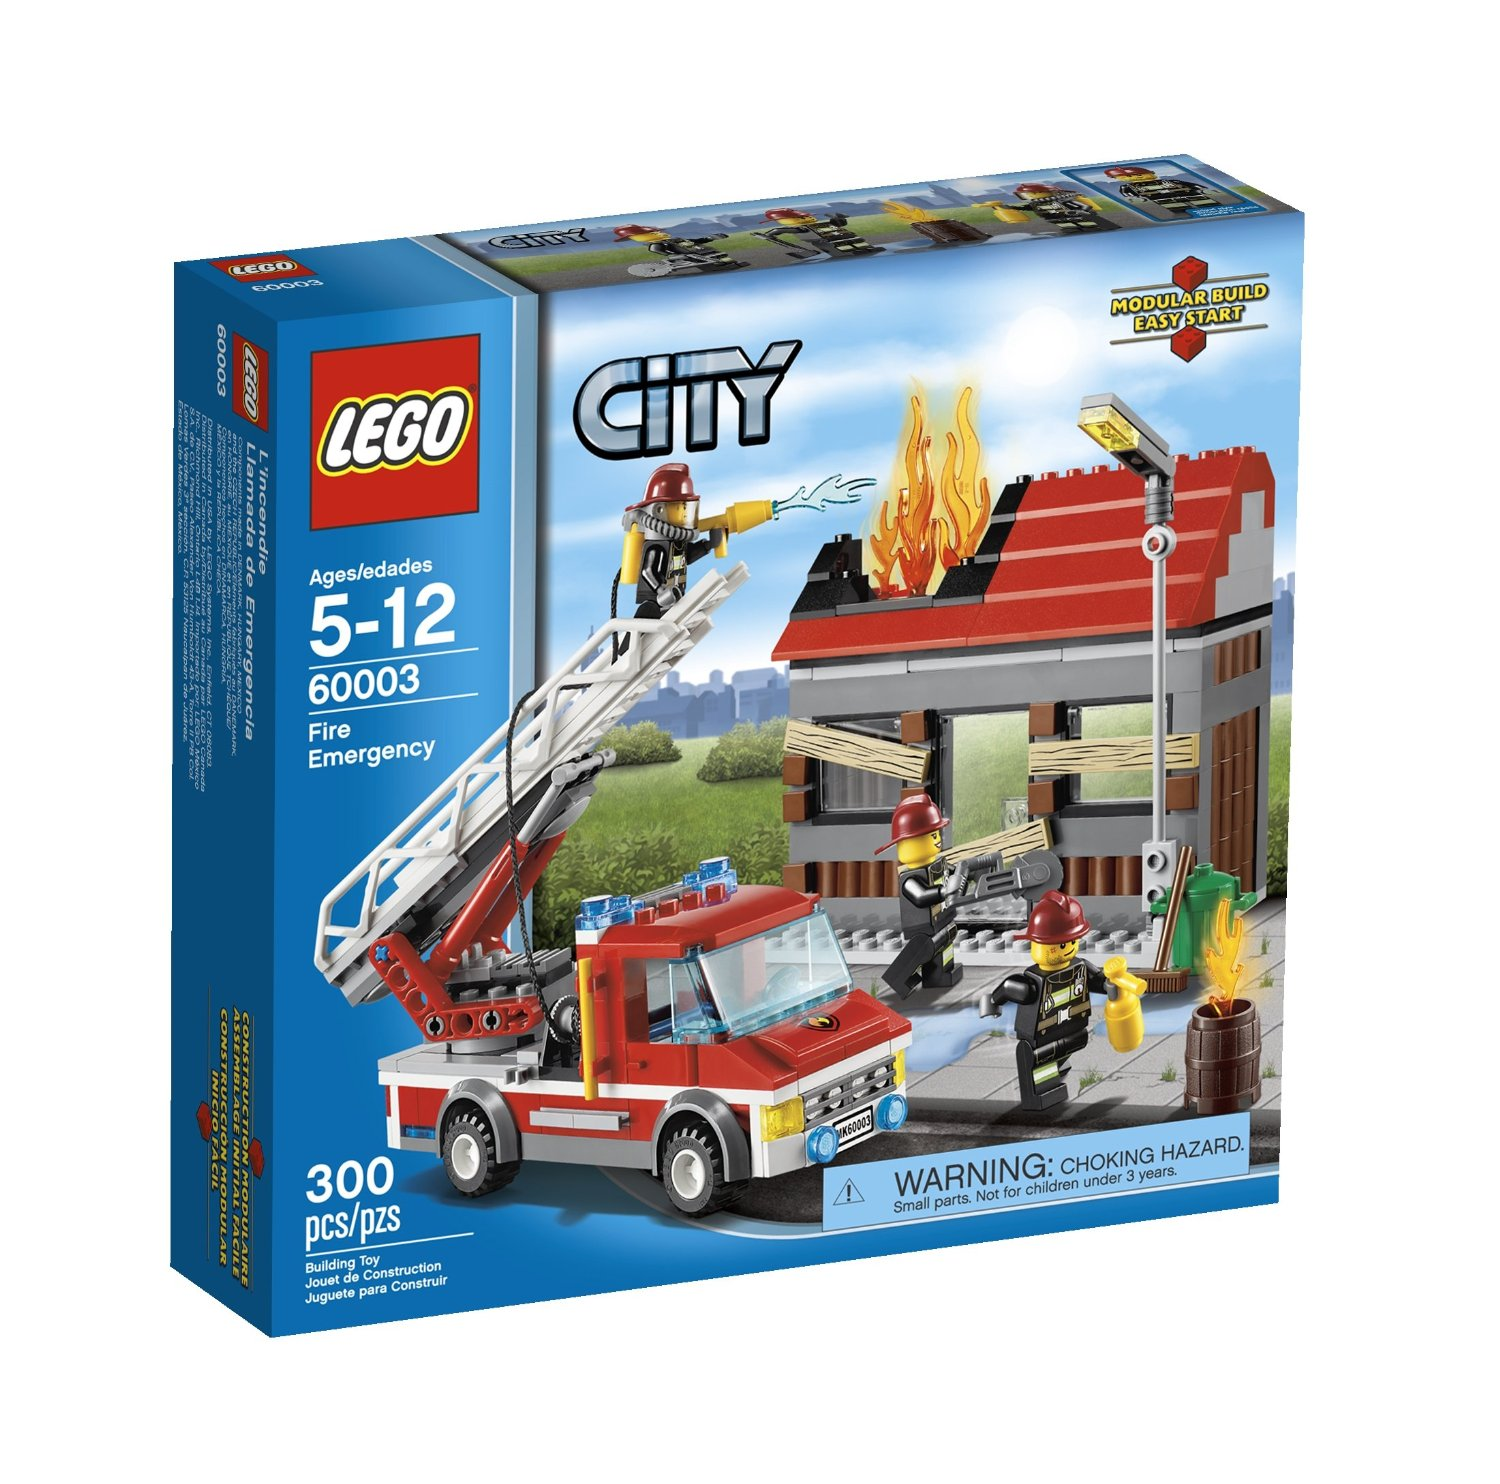 Lego 60003 City Fire Emergency